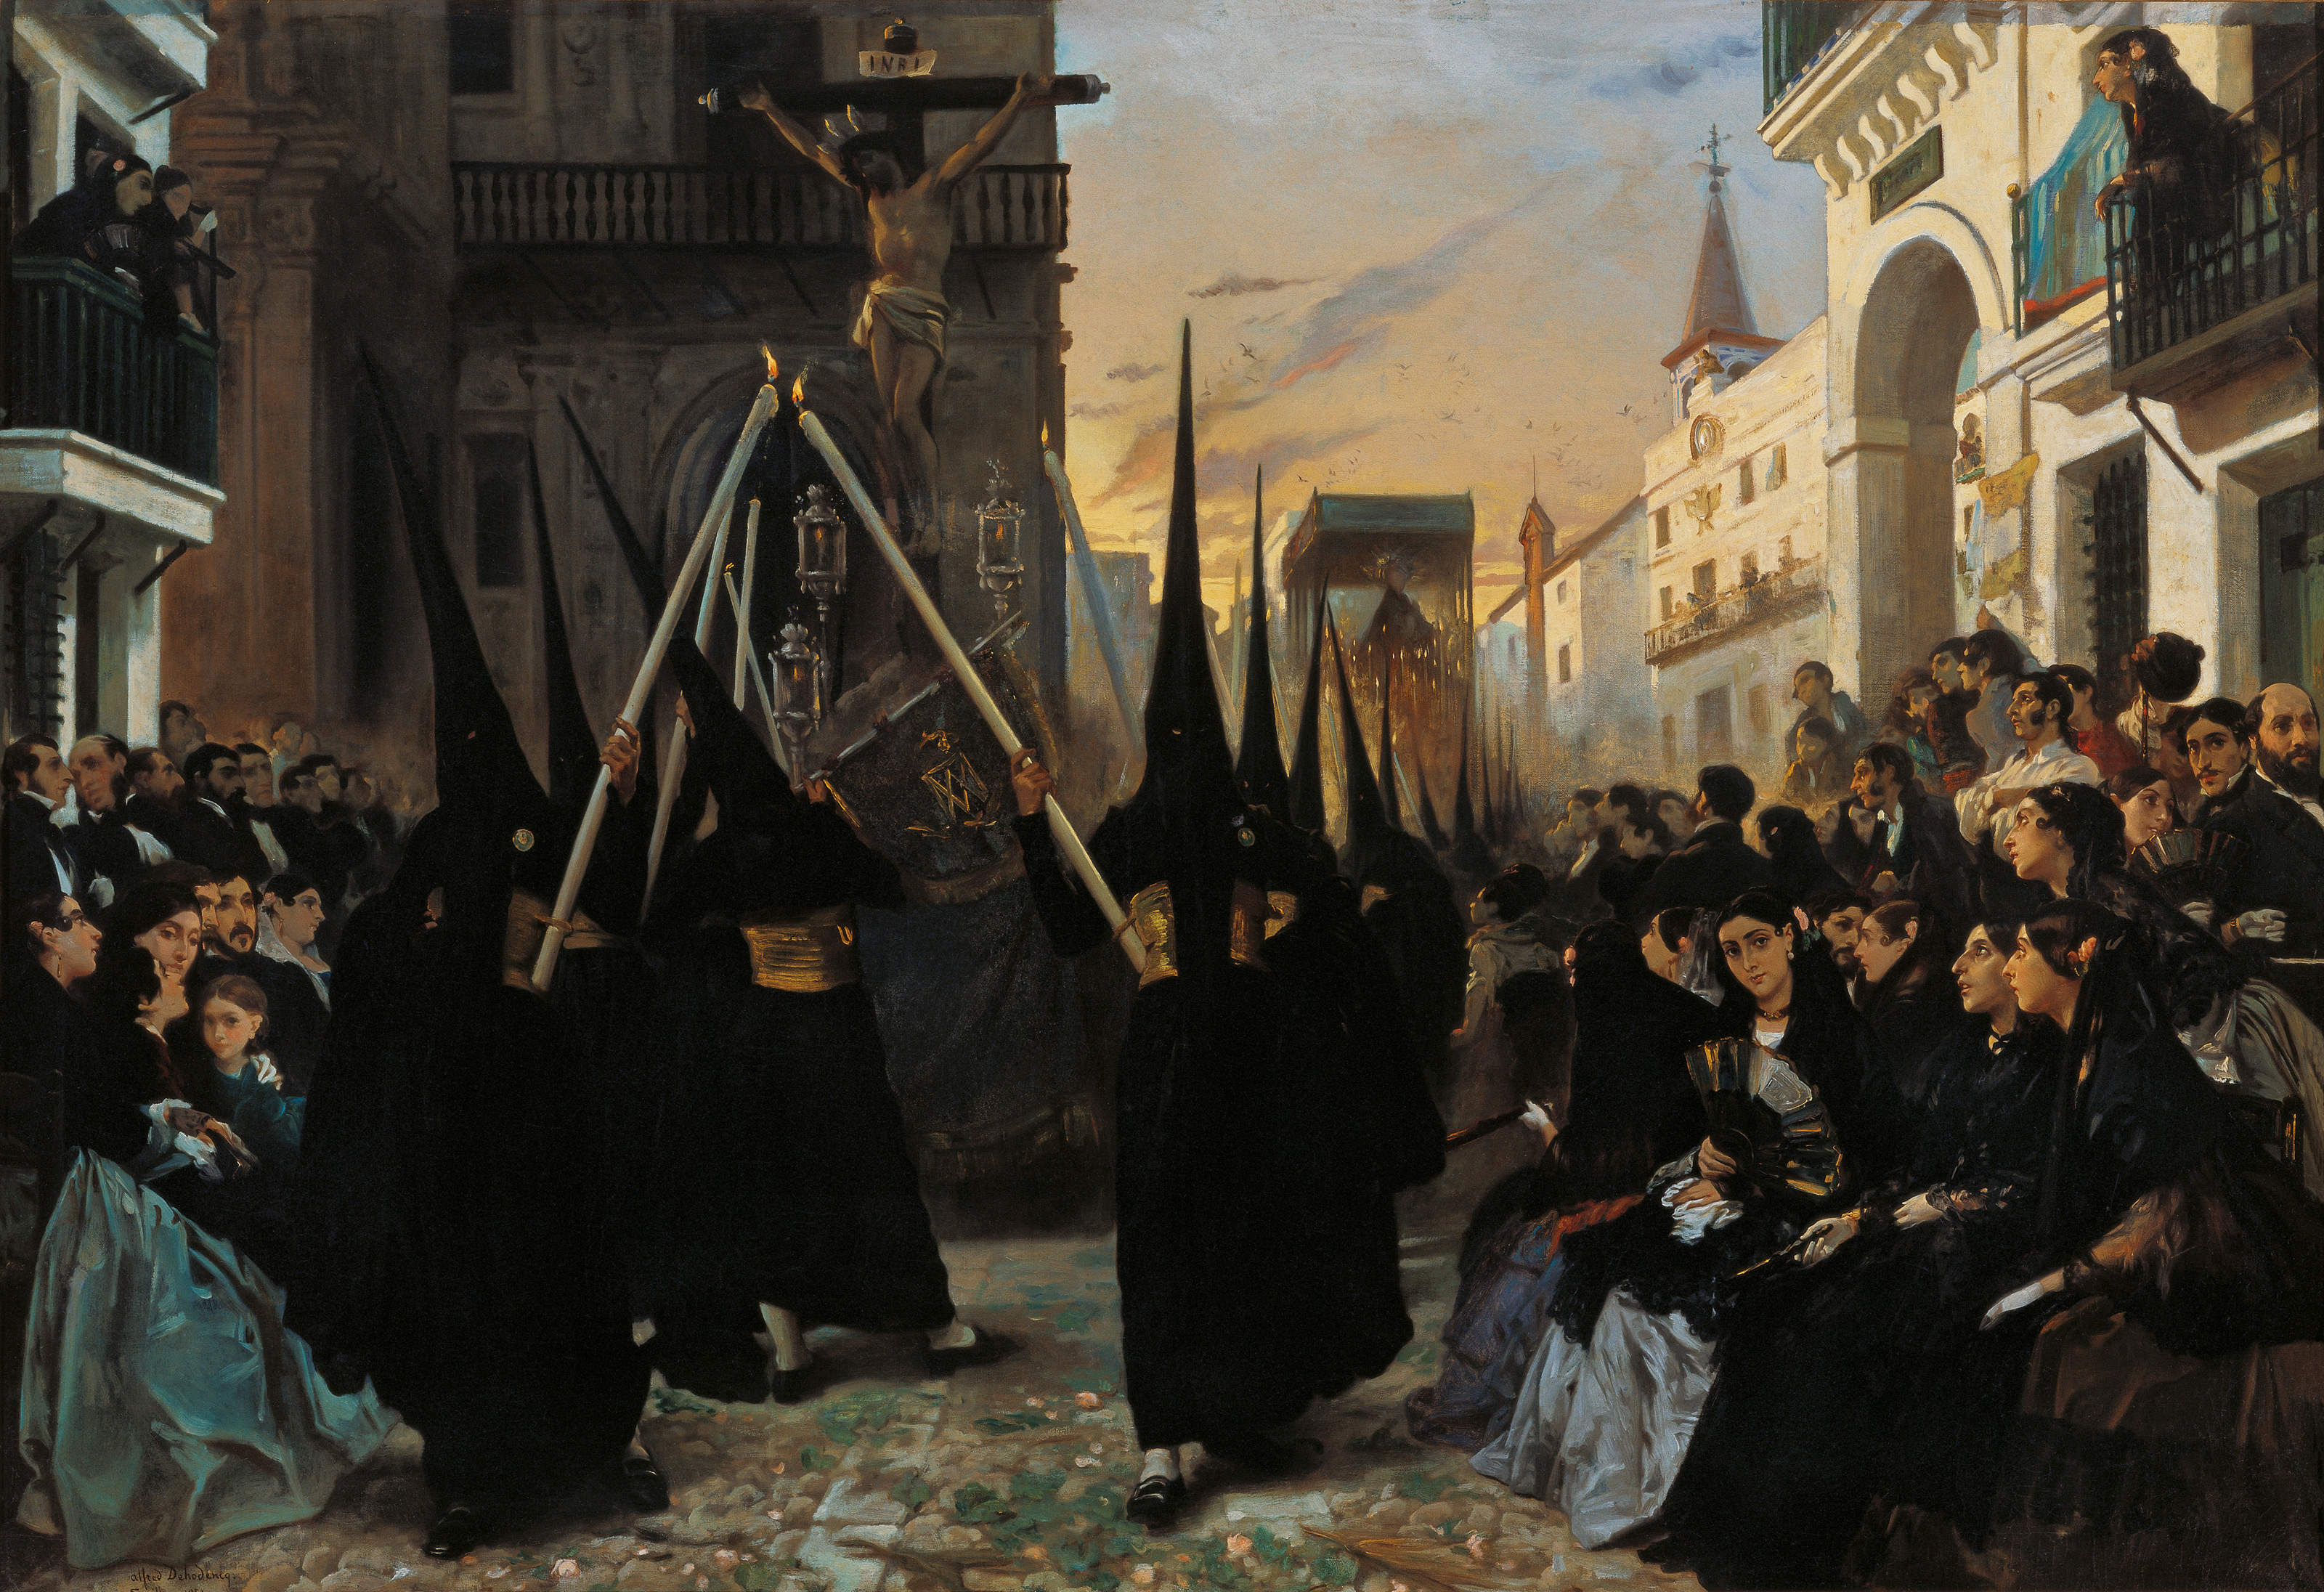 A Confraternity in Procession along Calle Génova,